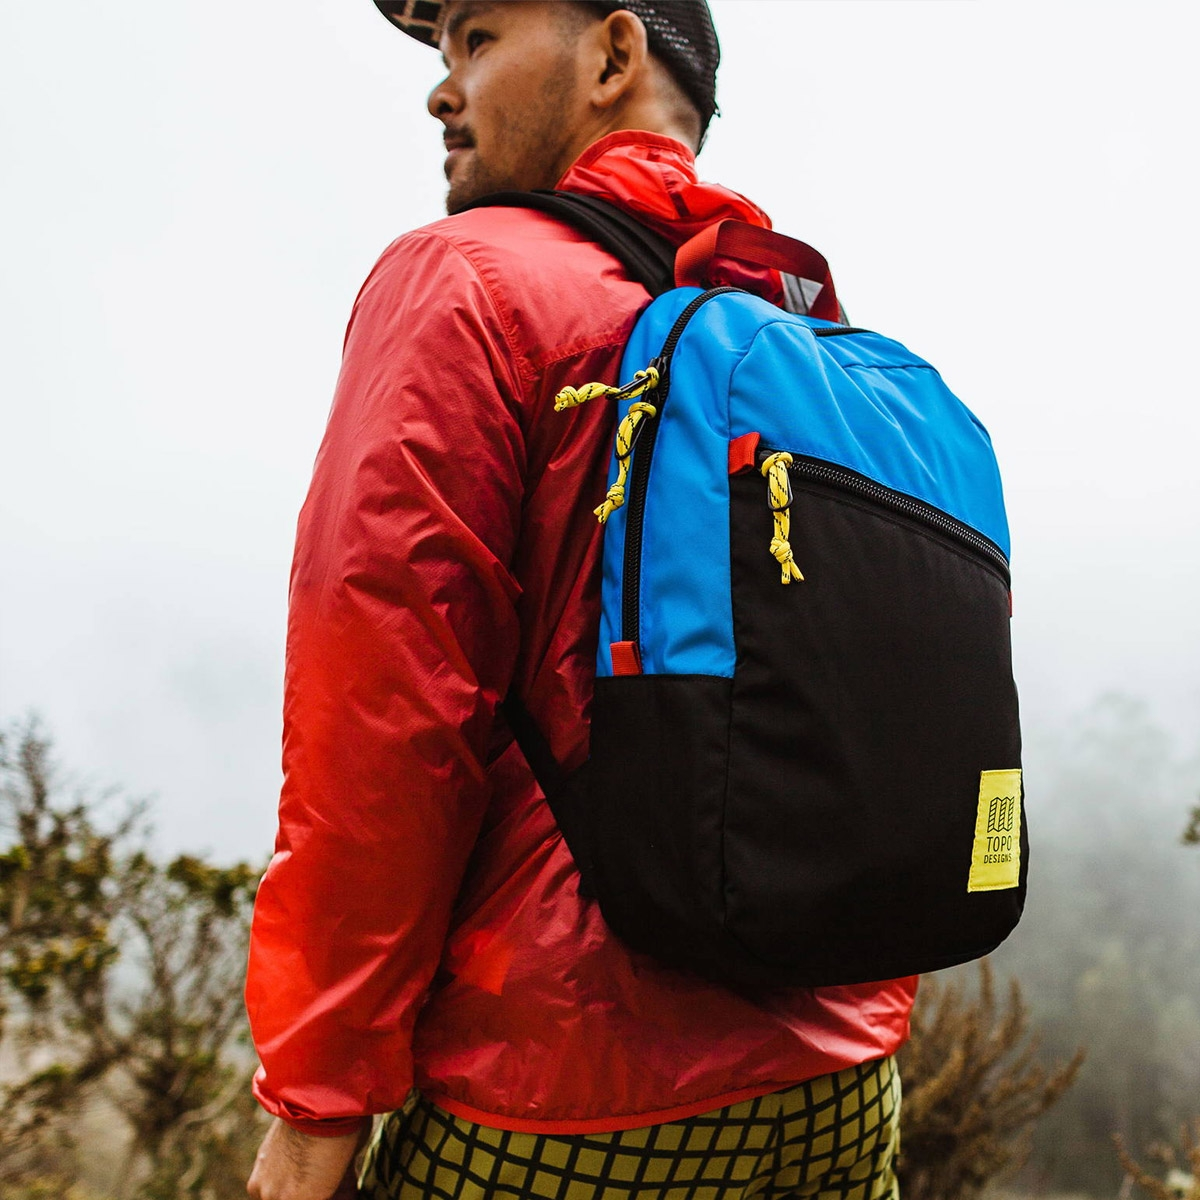 Topo Designs Light Pack Royal/Black, lightweight carry-all bag, also perfect pack for hiking